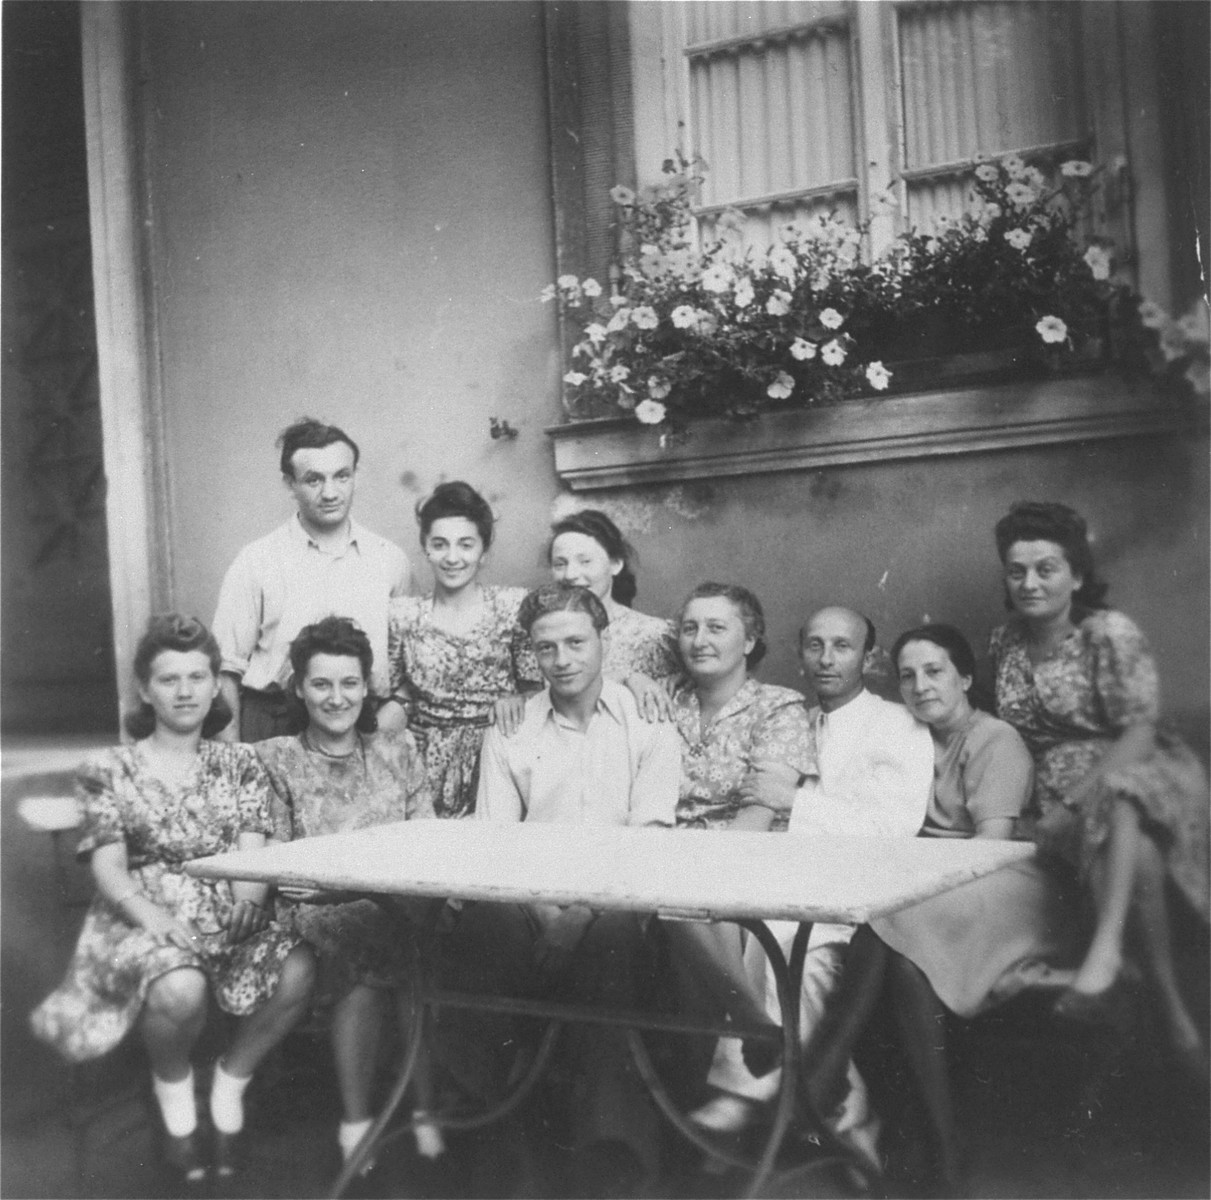 A group of Jewish displaced persons at the  Weiss cafe in the Weiden DP camp.    From the left, standing: Idek and Estera Pffefer; Sitting from left to right are Wadna, Helen Luksenburg (Chilewicz) and Willi (Welek) Luksenburg.  Next to them are Mr. and Mrs. Mates Billauer, head of the Jewish Community Center.  To the extreme right is Irke Haze.